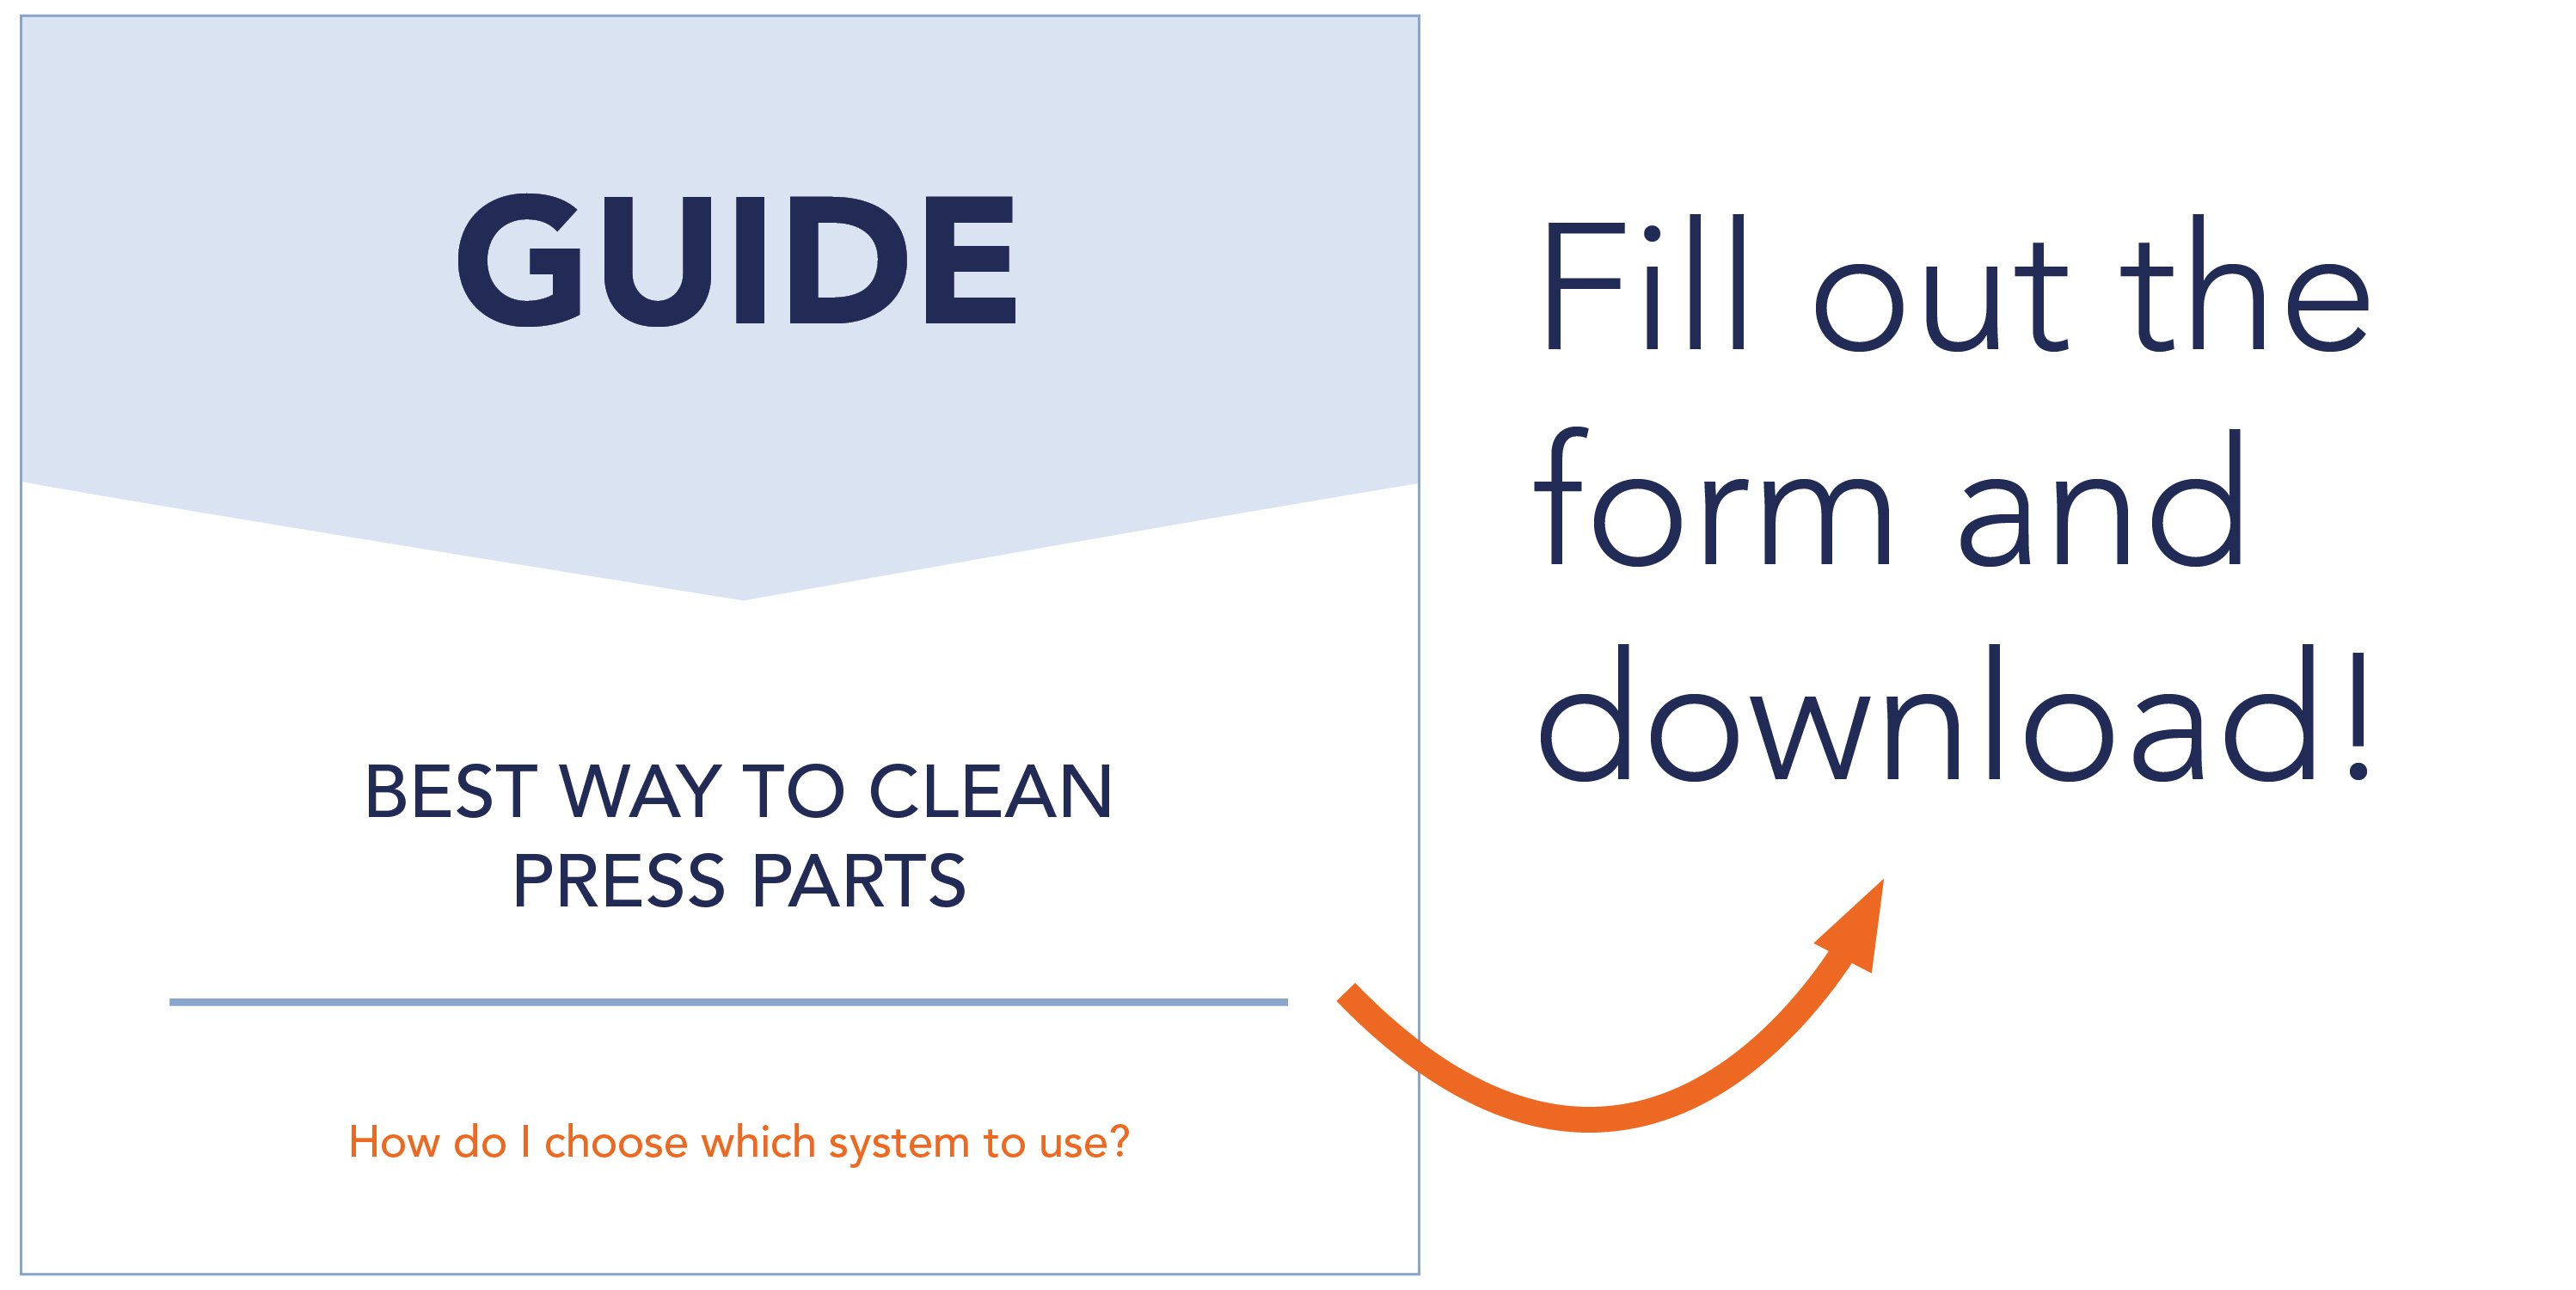 Image_guide_best way to clean press parts_2